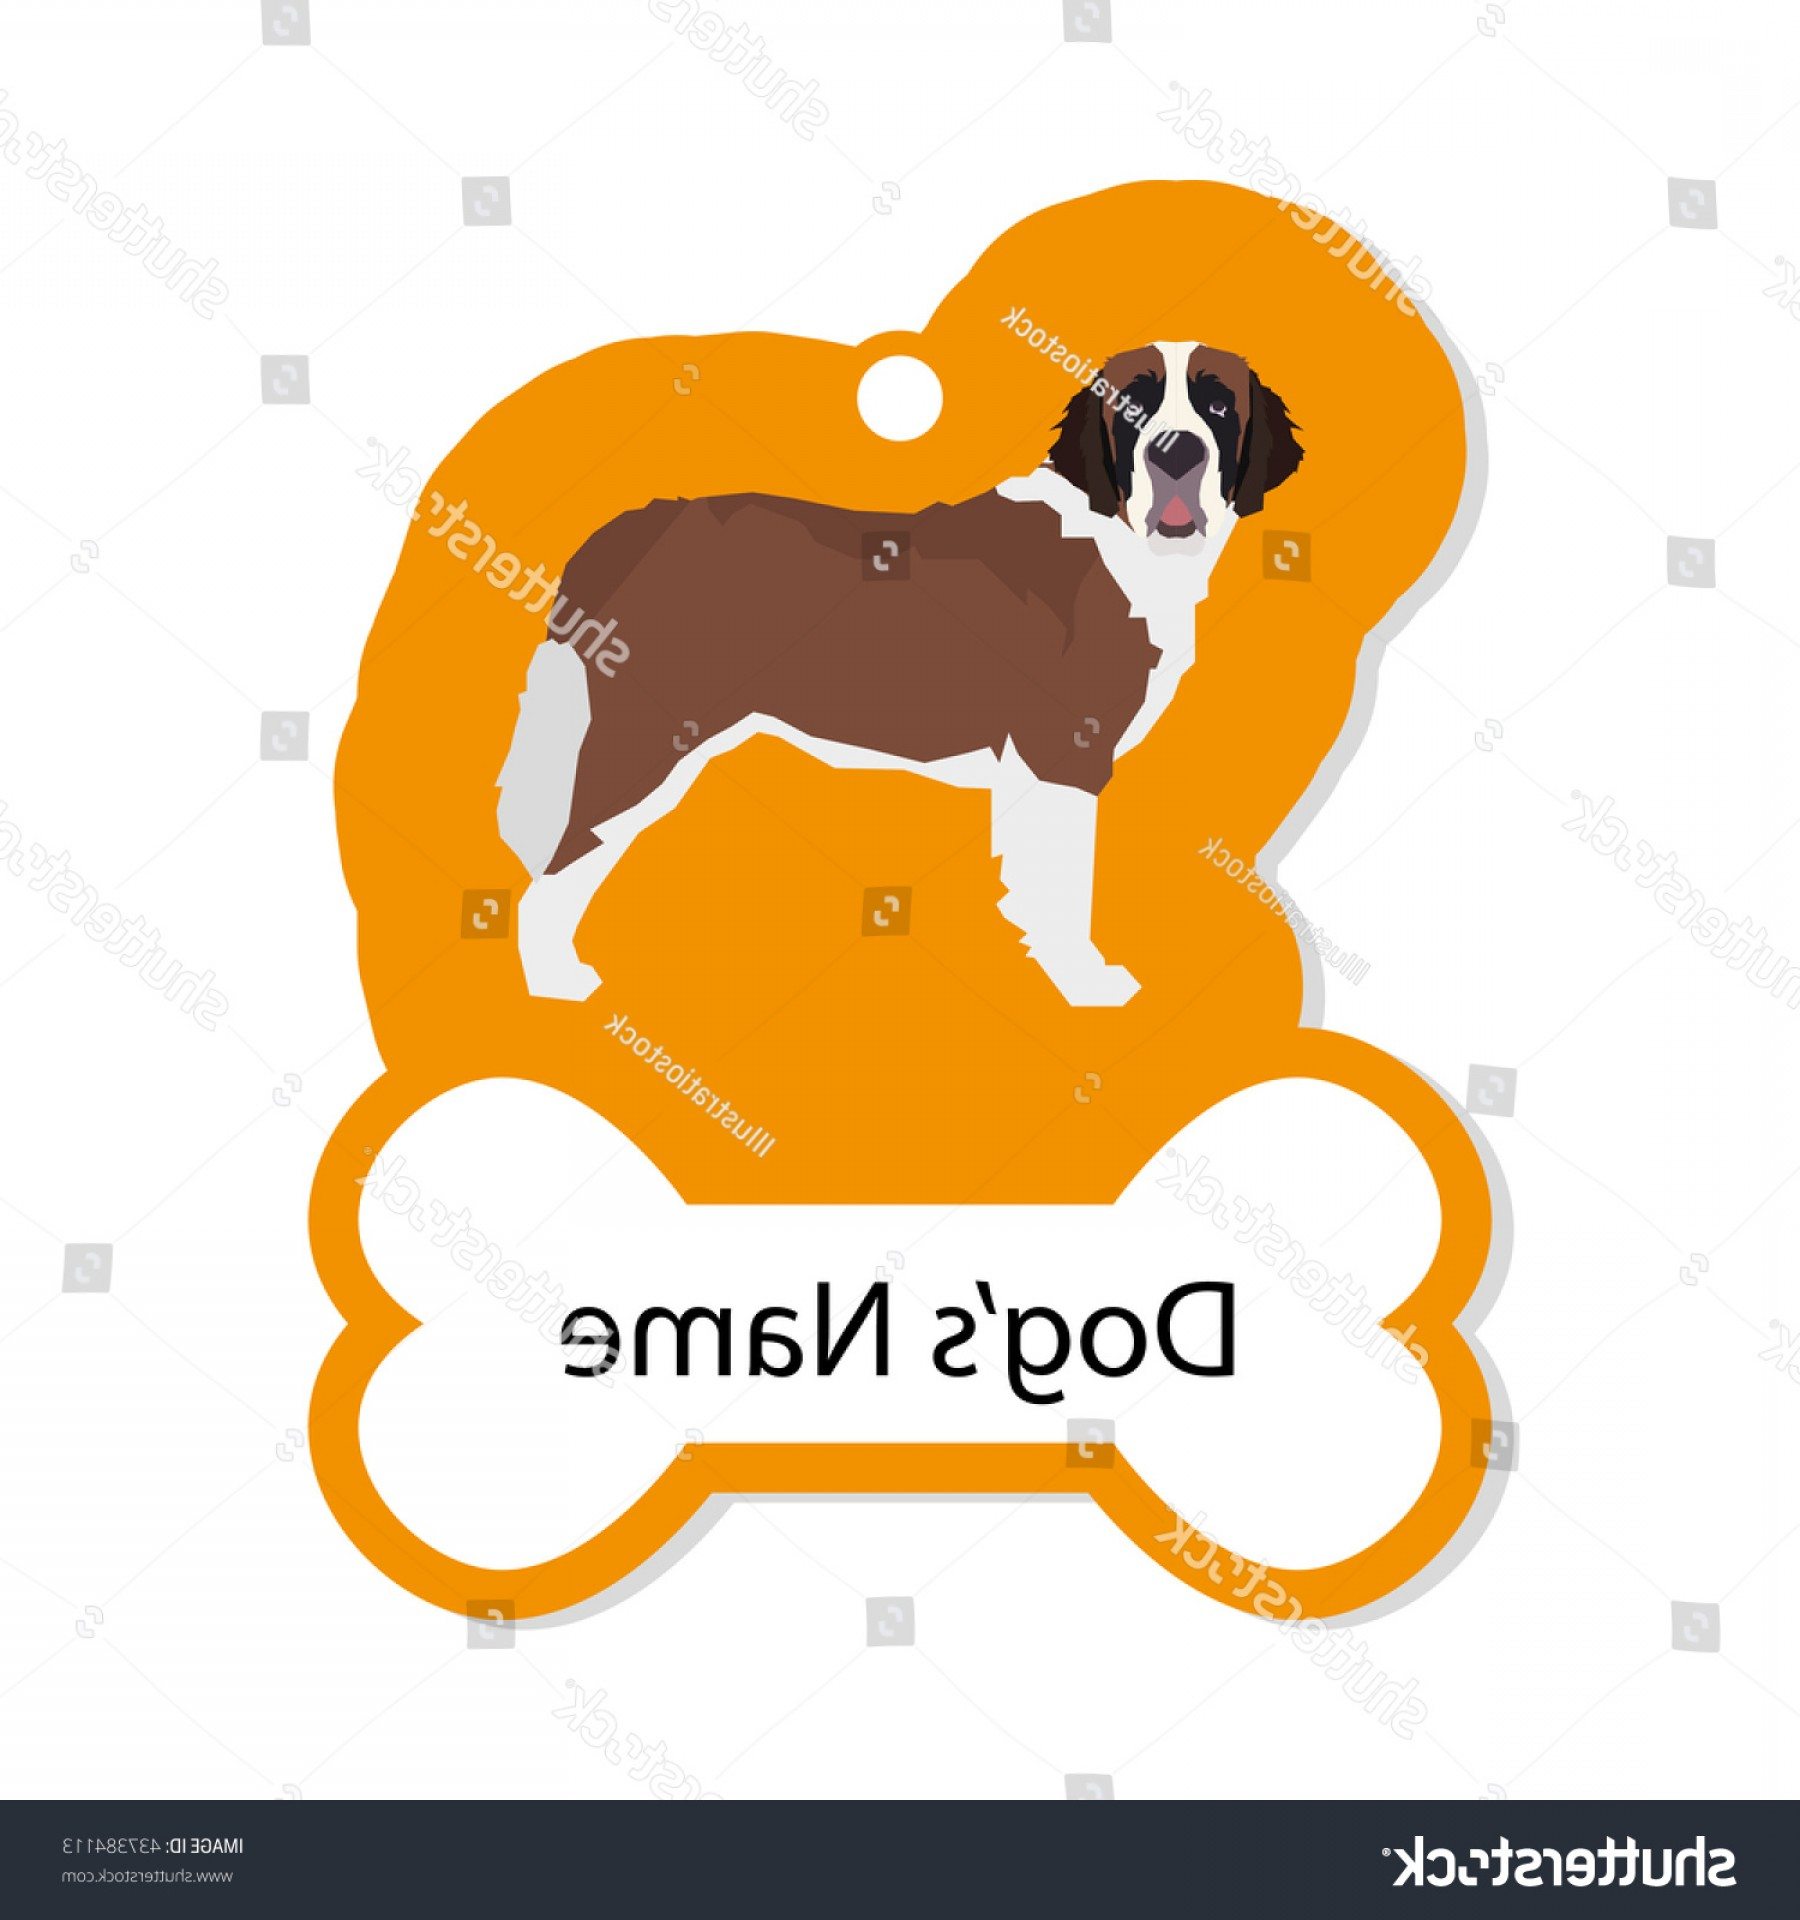 Bone Shaped Dog Tags Vector Art: Isolated Golden Dog Tag Text Illustration